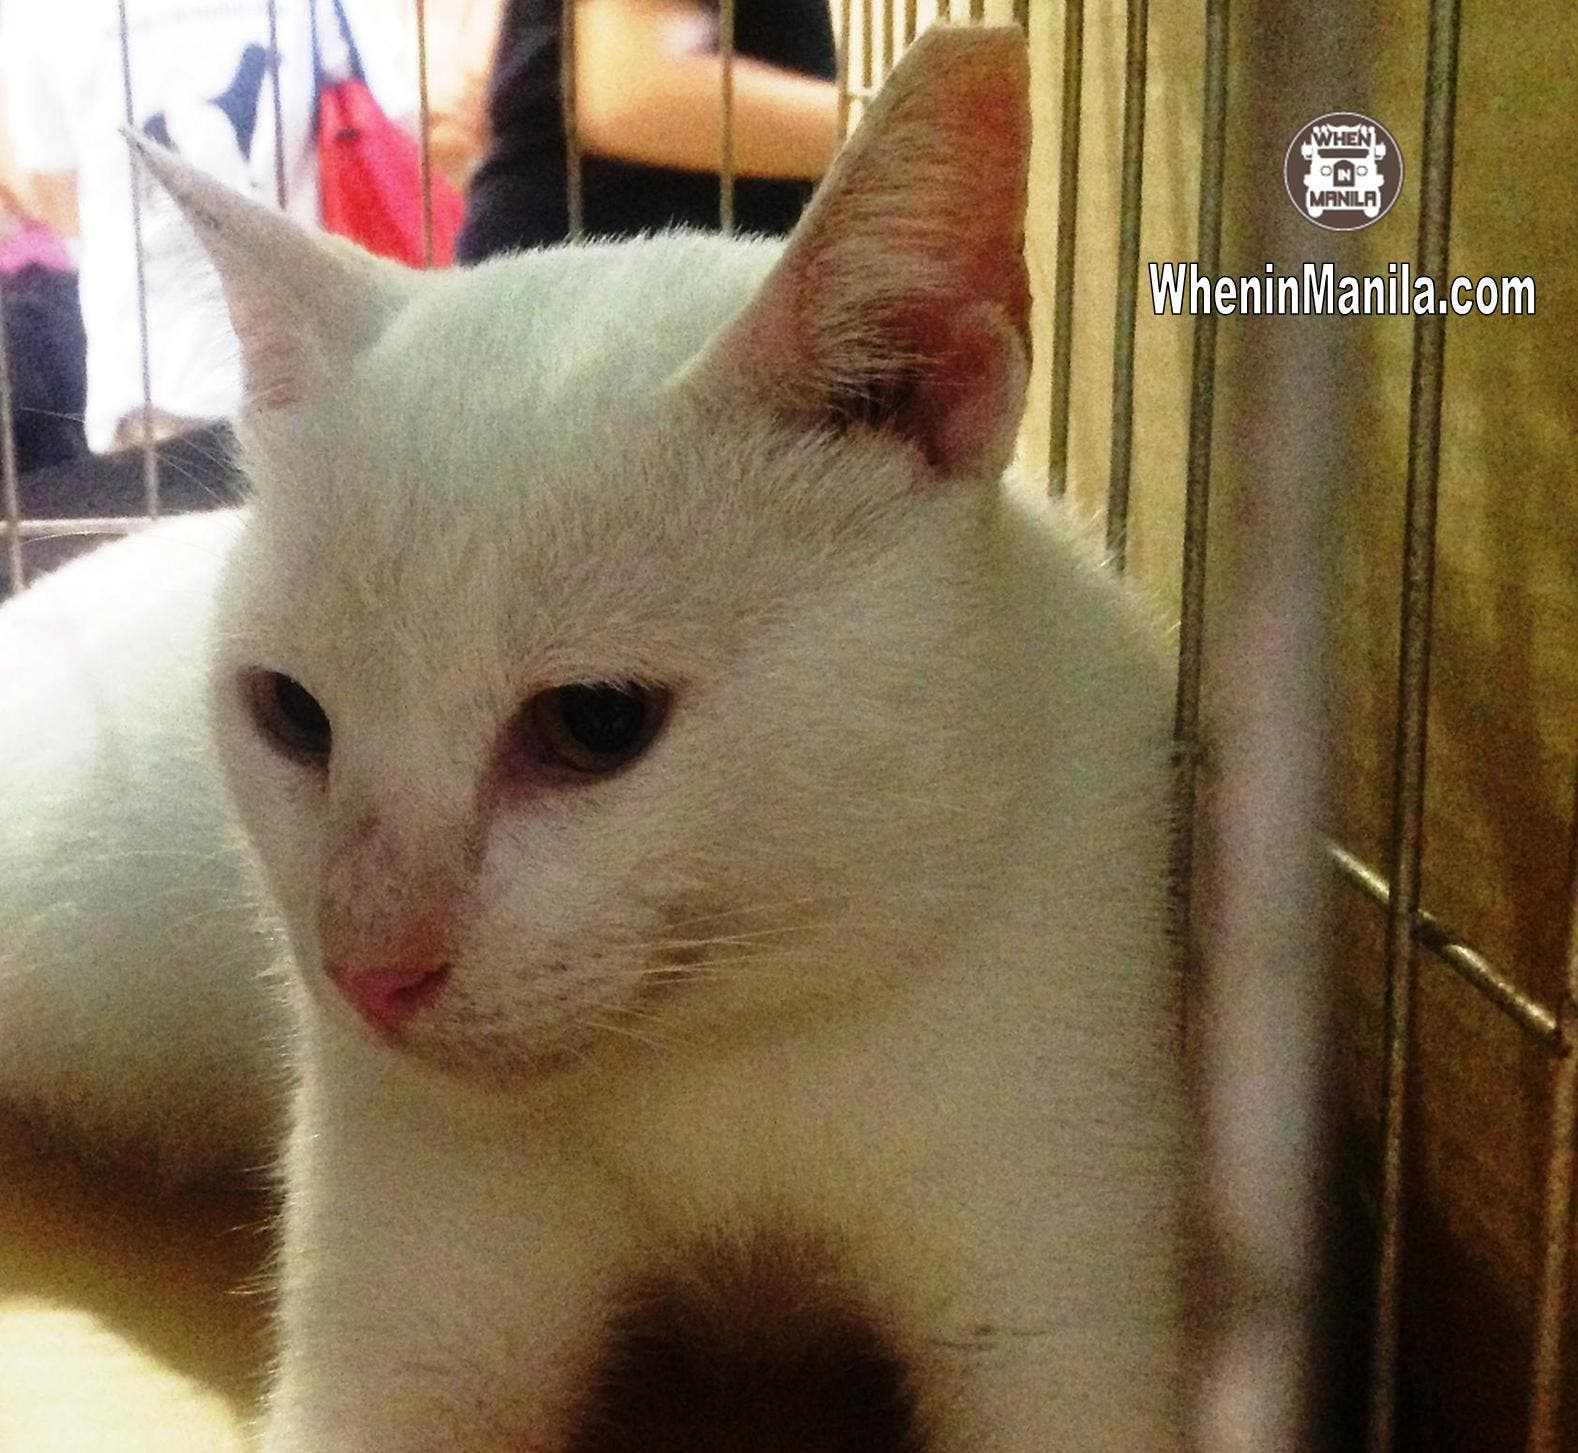 Animal Rescue and Welfare in the Philippines - Akihiro - Rescued Cat for Adoption